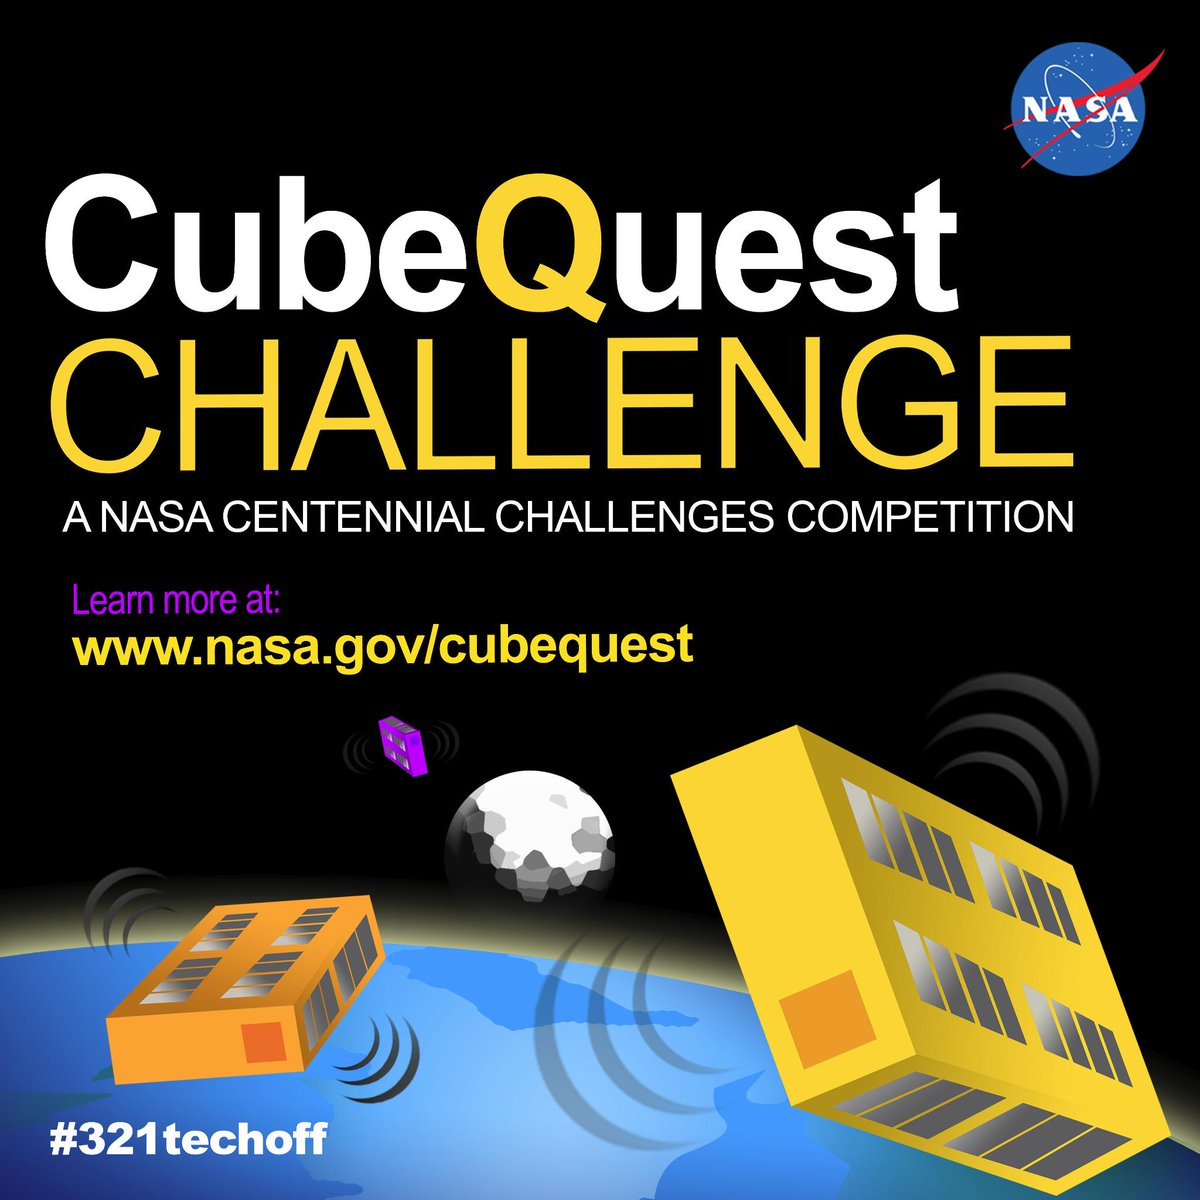 Pleased to announce our brand new Cube Quest #CubeSat Challenge for $5M prize purse! Details: http://t.co/bKBlhu3ohx http://t.co/MXlSqOiupQ